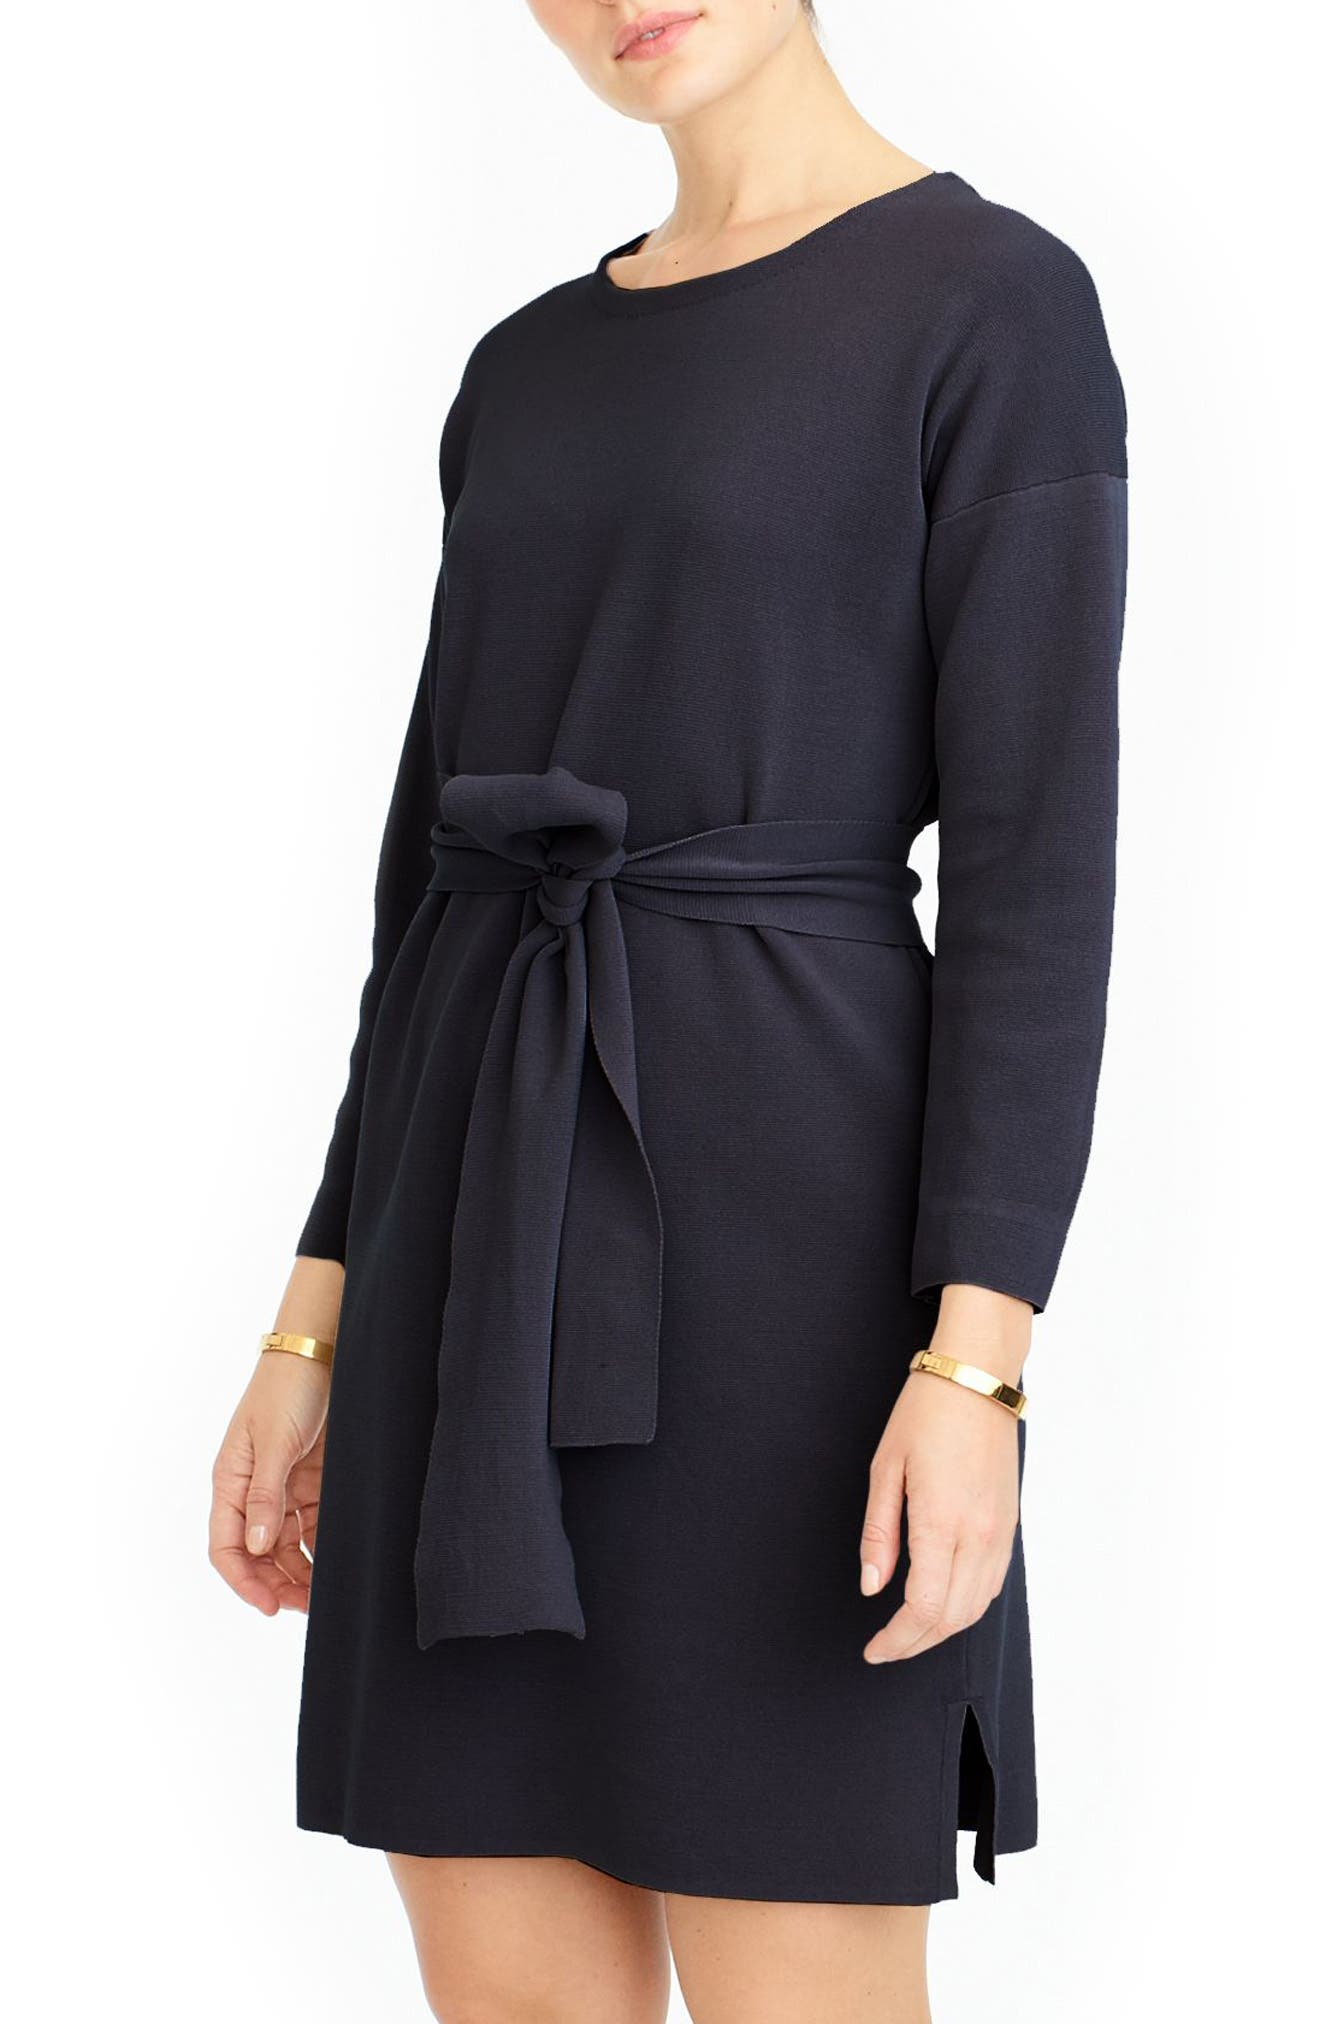 J.Crew Tie Waist Knit Dress,                             Main thumbnail 1, color,                             Indigo Sea